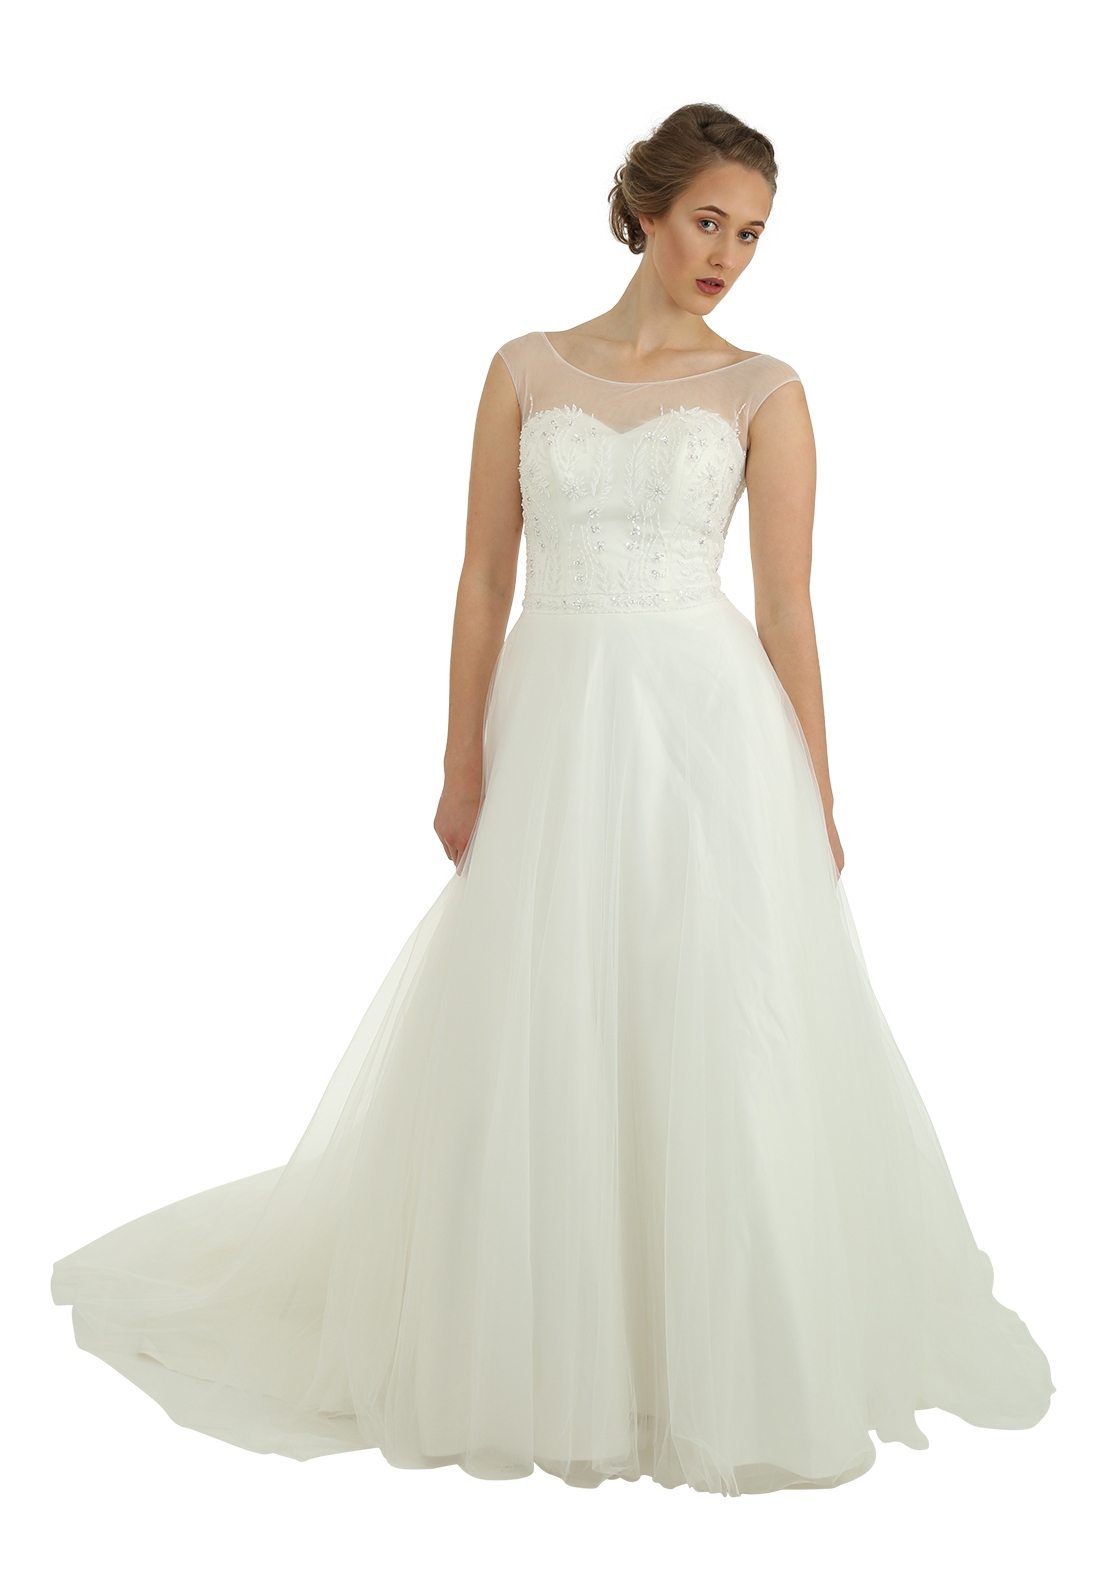 Victoria Kay Ella Collection E25 Wedding Dress, Ivory